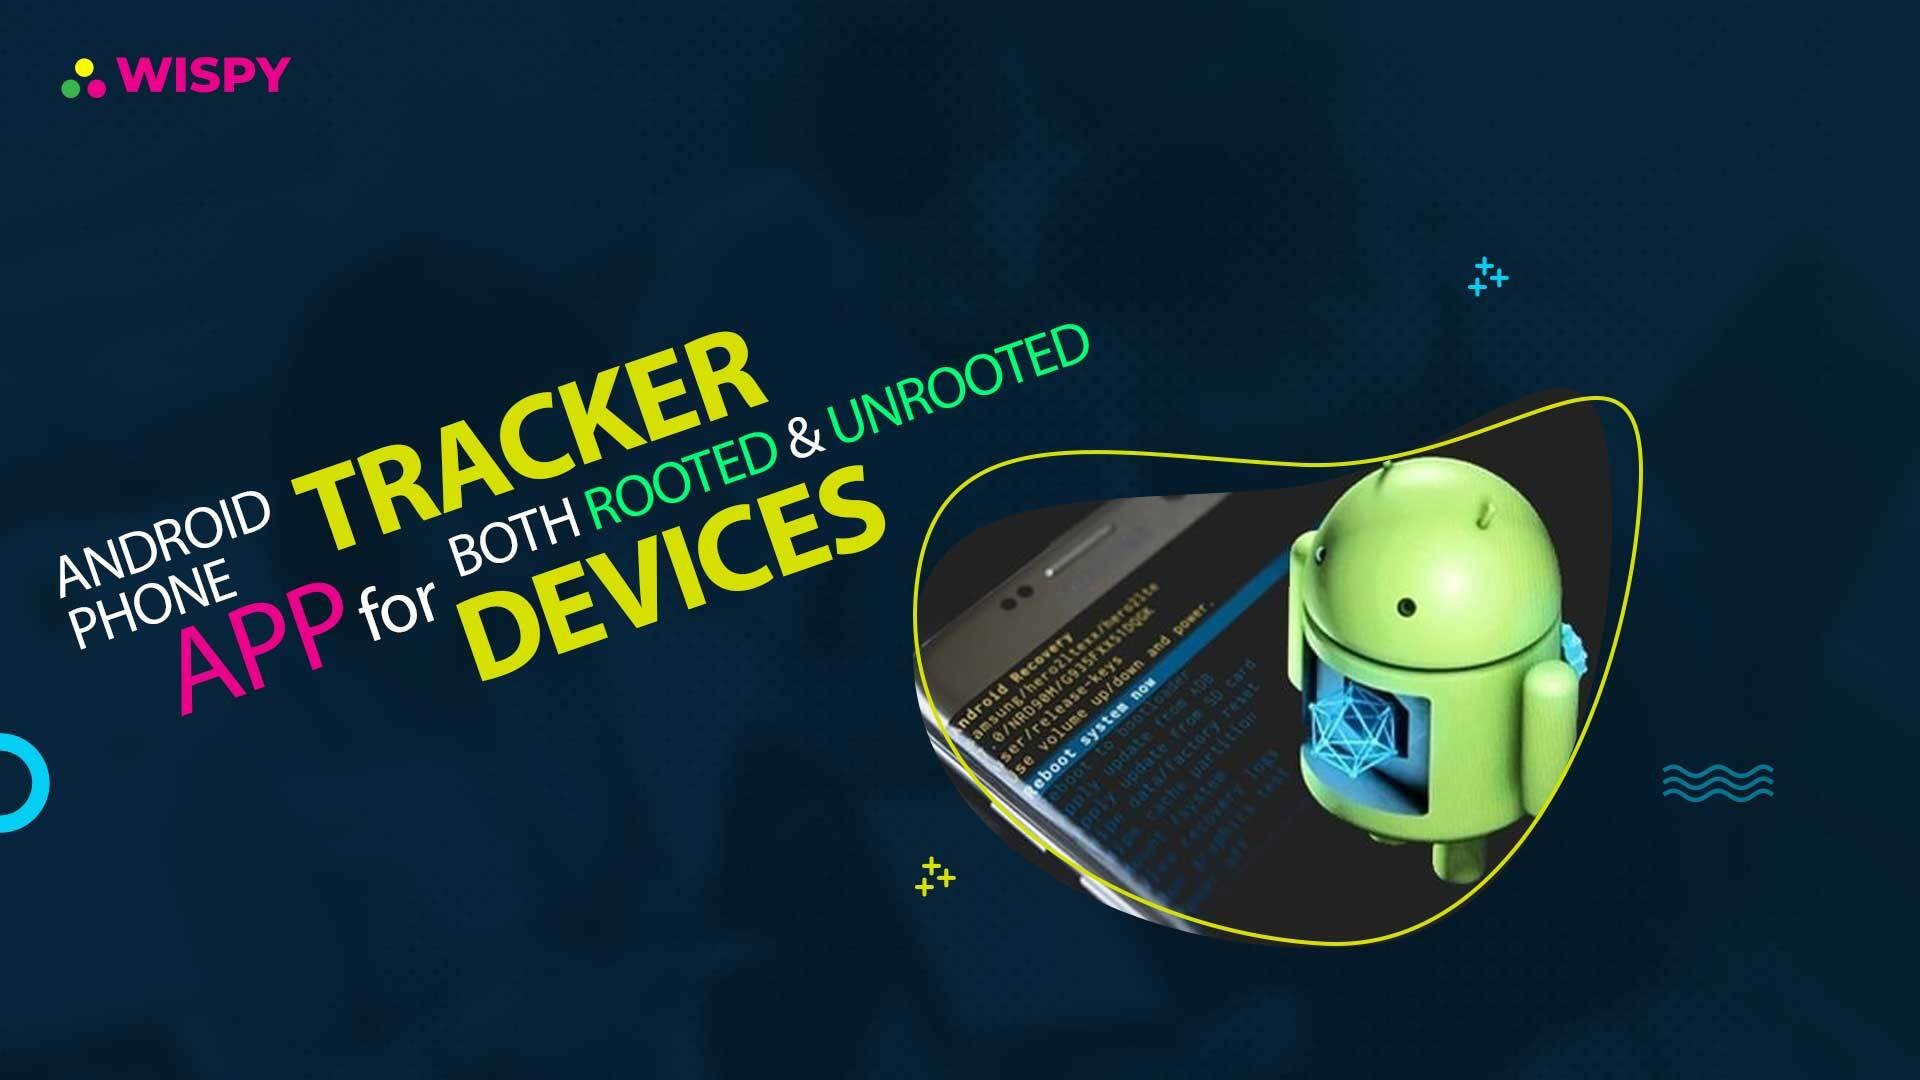 Android Phone Tracker App for Both Rooted and Unrooted Devices